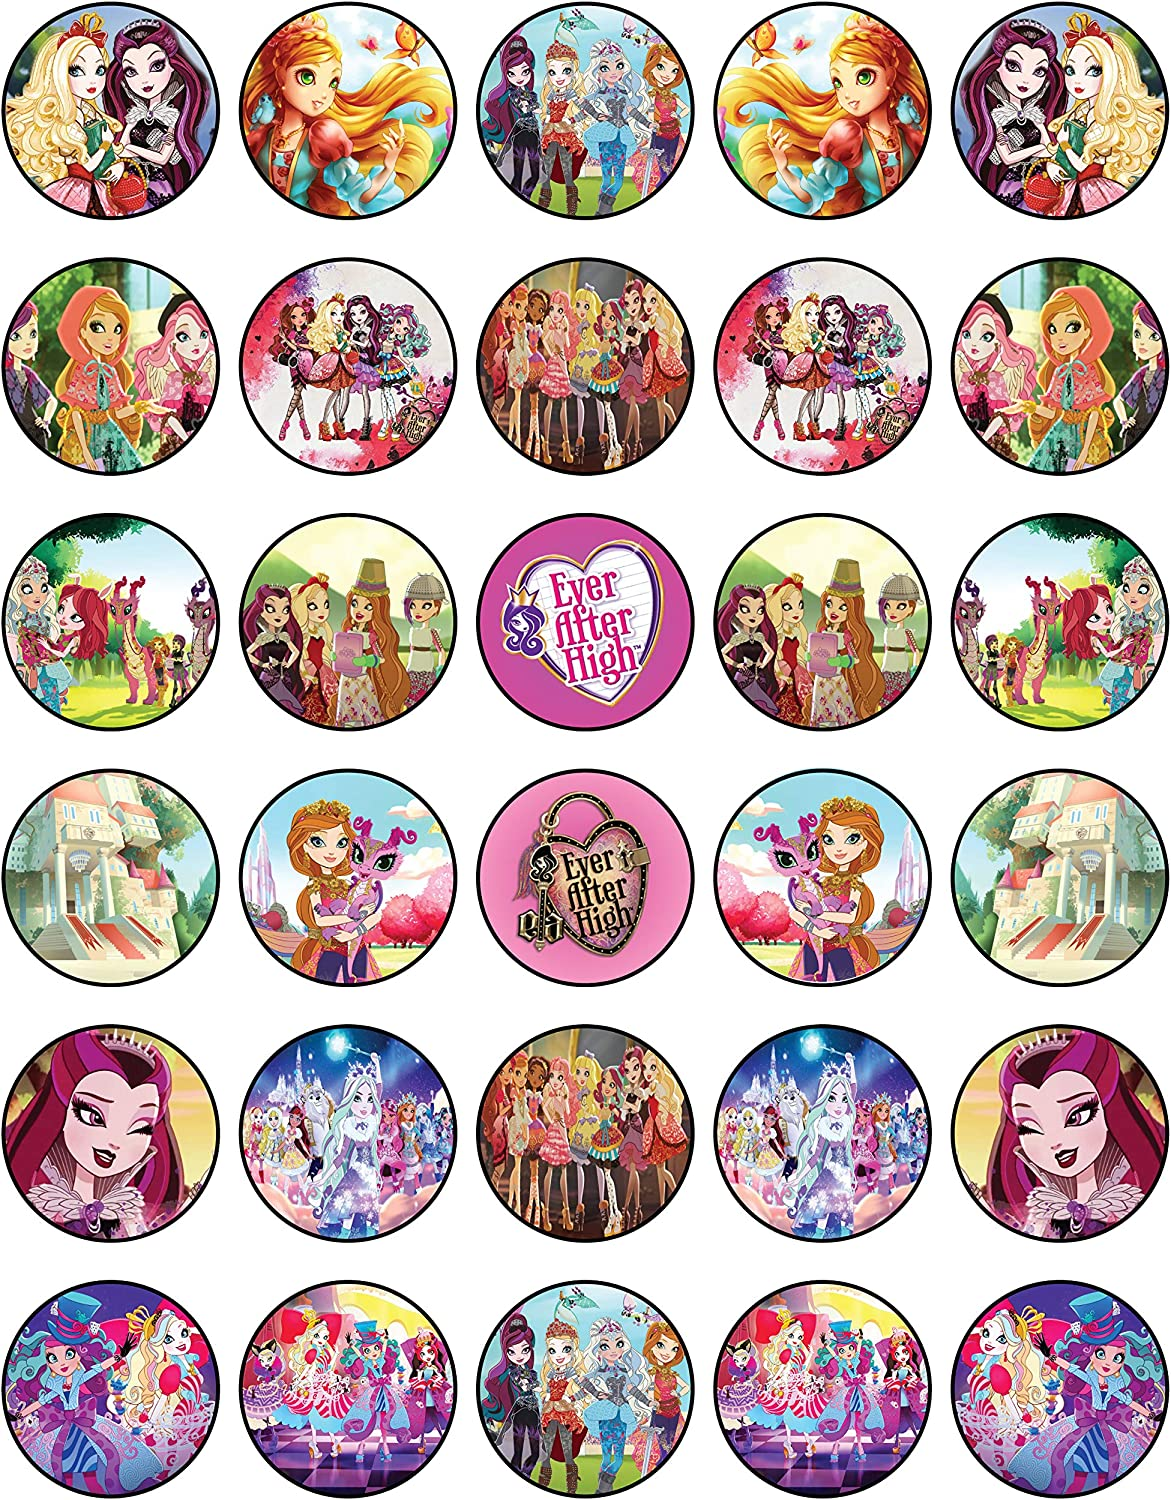 30 x Edible Cupcake Toppers Themed of Ever After High Collection of Edible Cake Decorations | Uncut Edible on Wafer Sheet